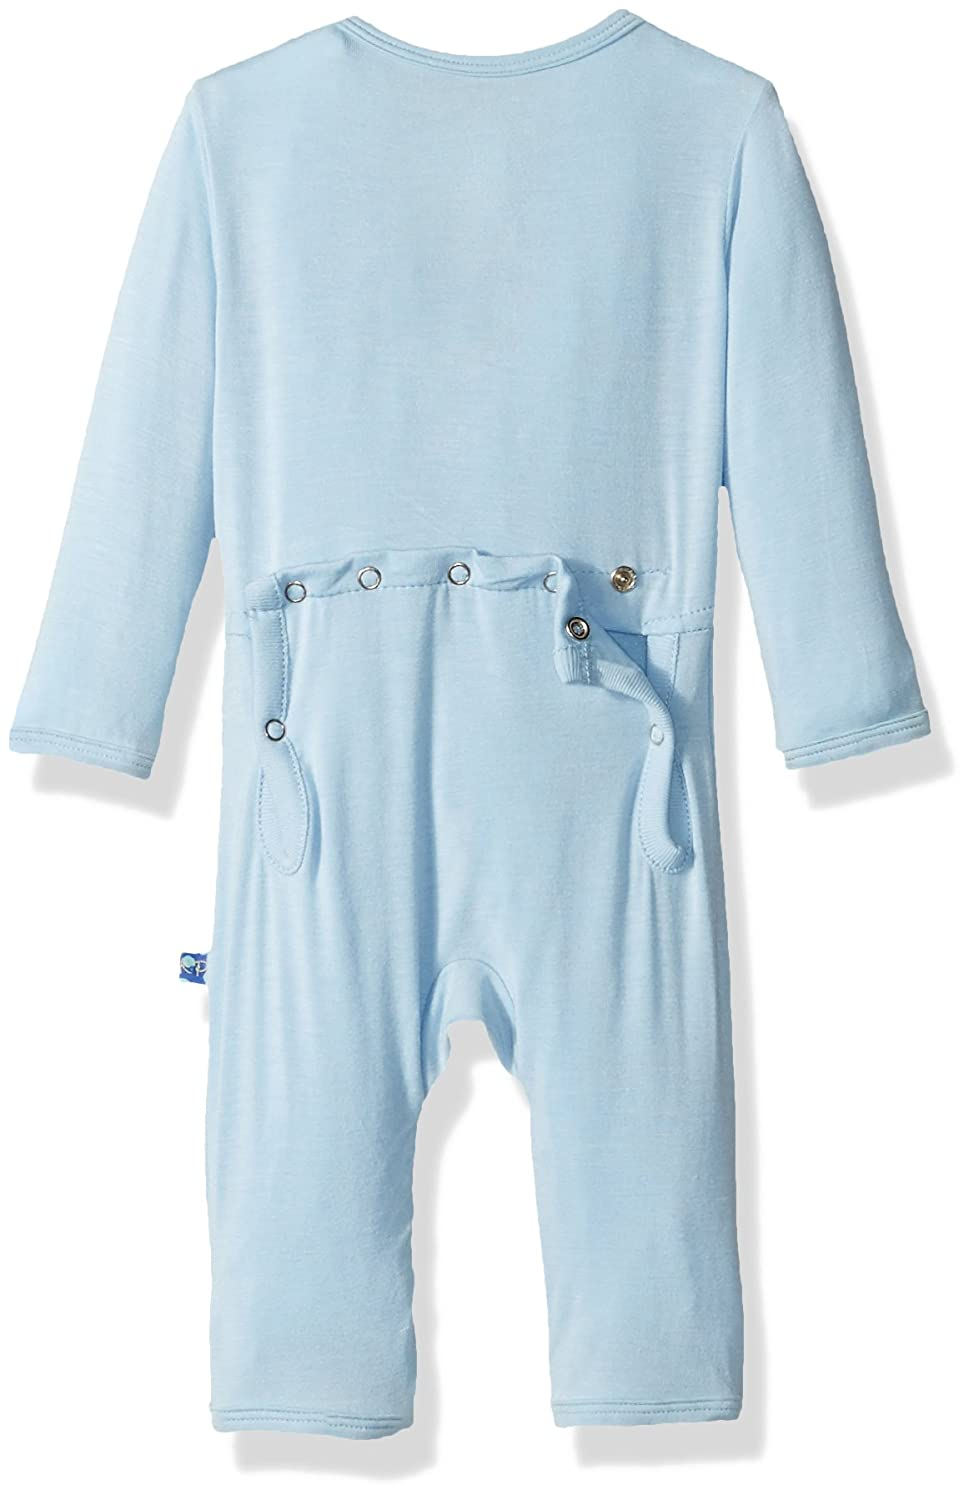 Amazon.com: Kickee Pantalones bebé Boys Essentials Solid ...